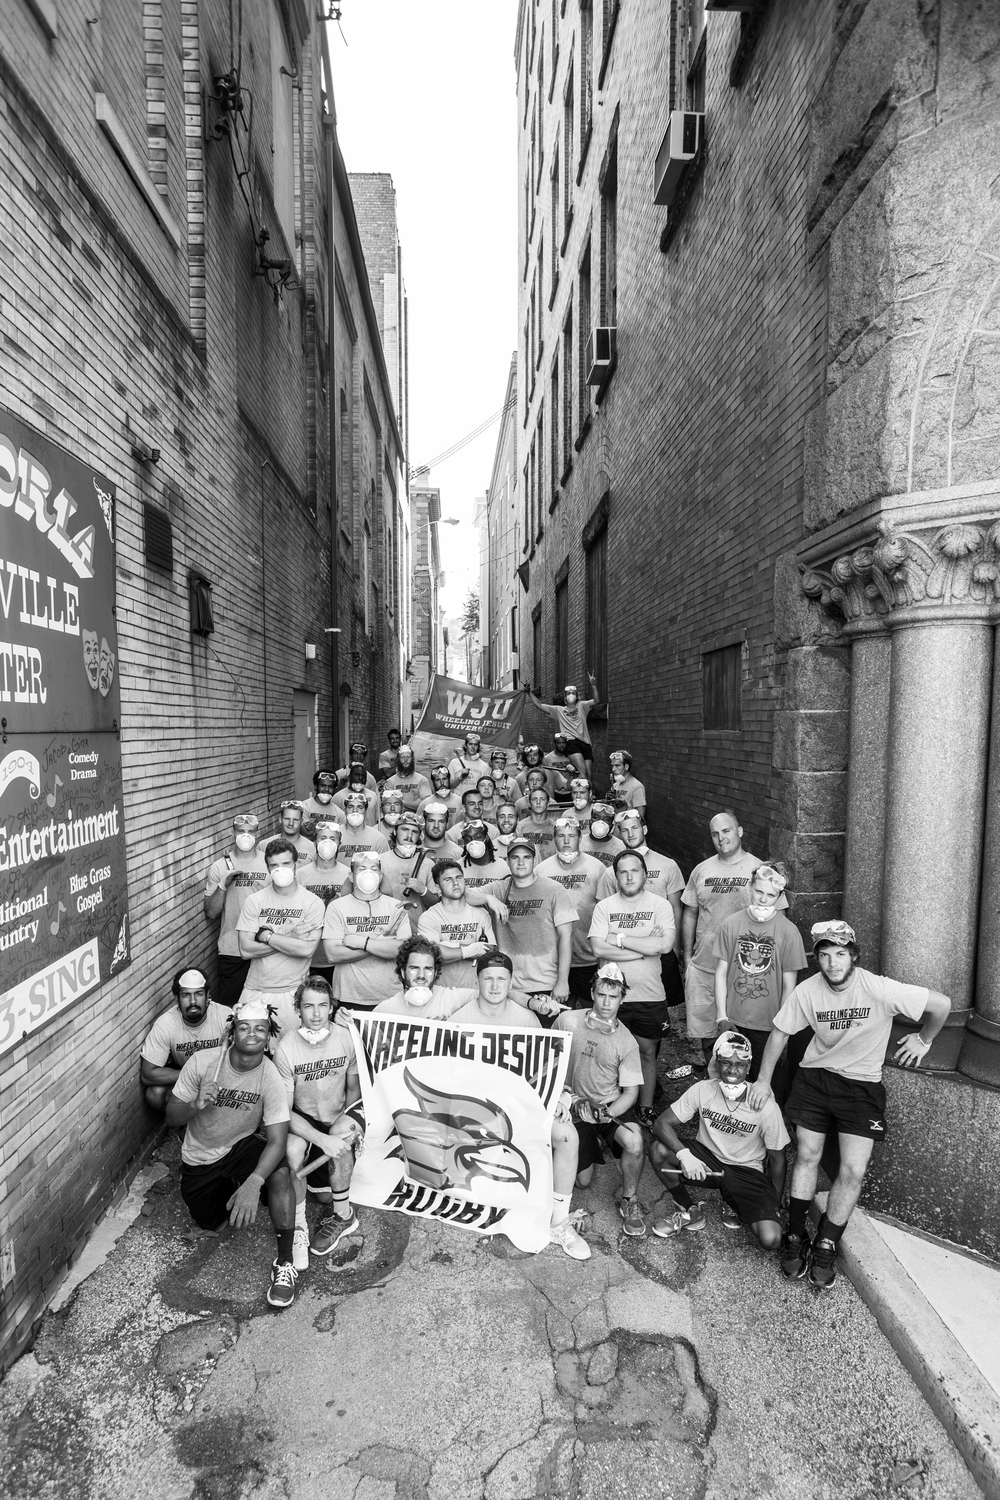 The Wheeling Jesuit rugby team barely fit into the narrow alley.